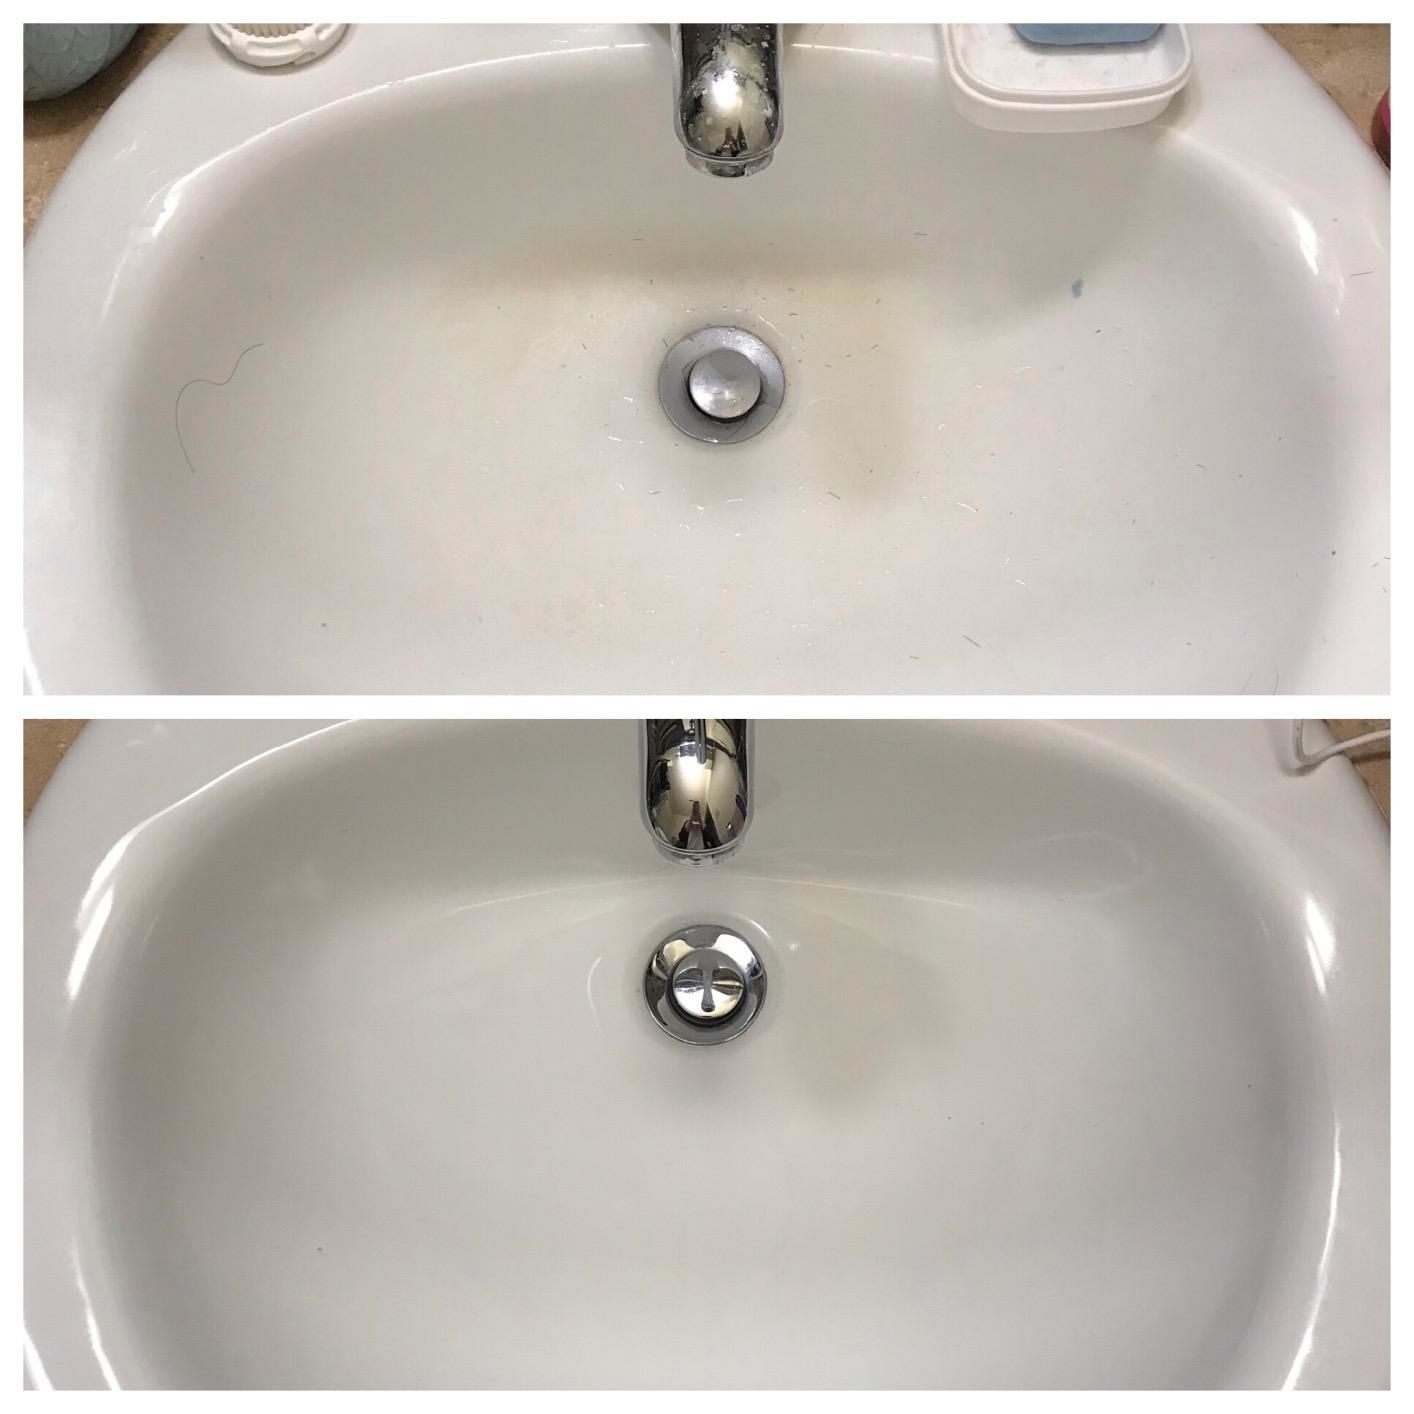 Reviewer photo of bathroom sink before and after using Bar Keepers Friend